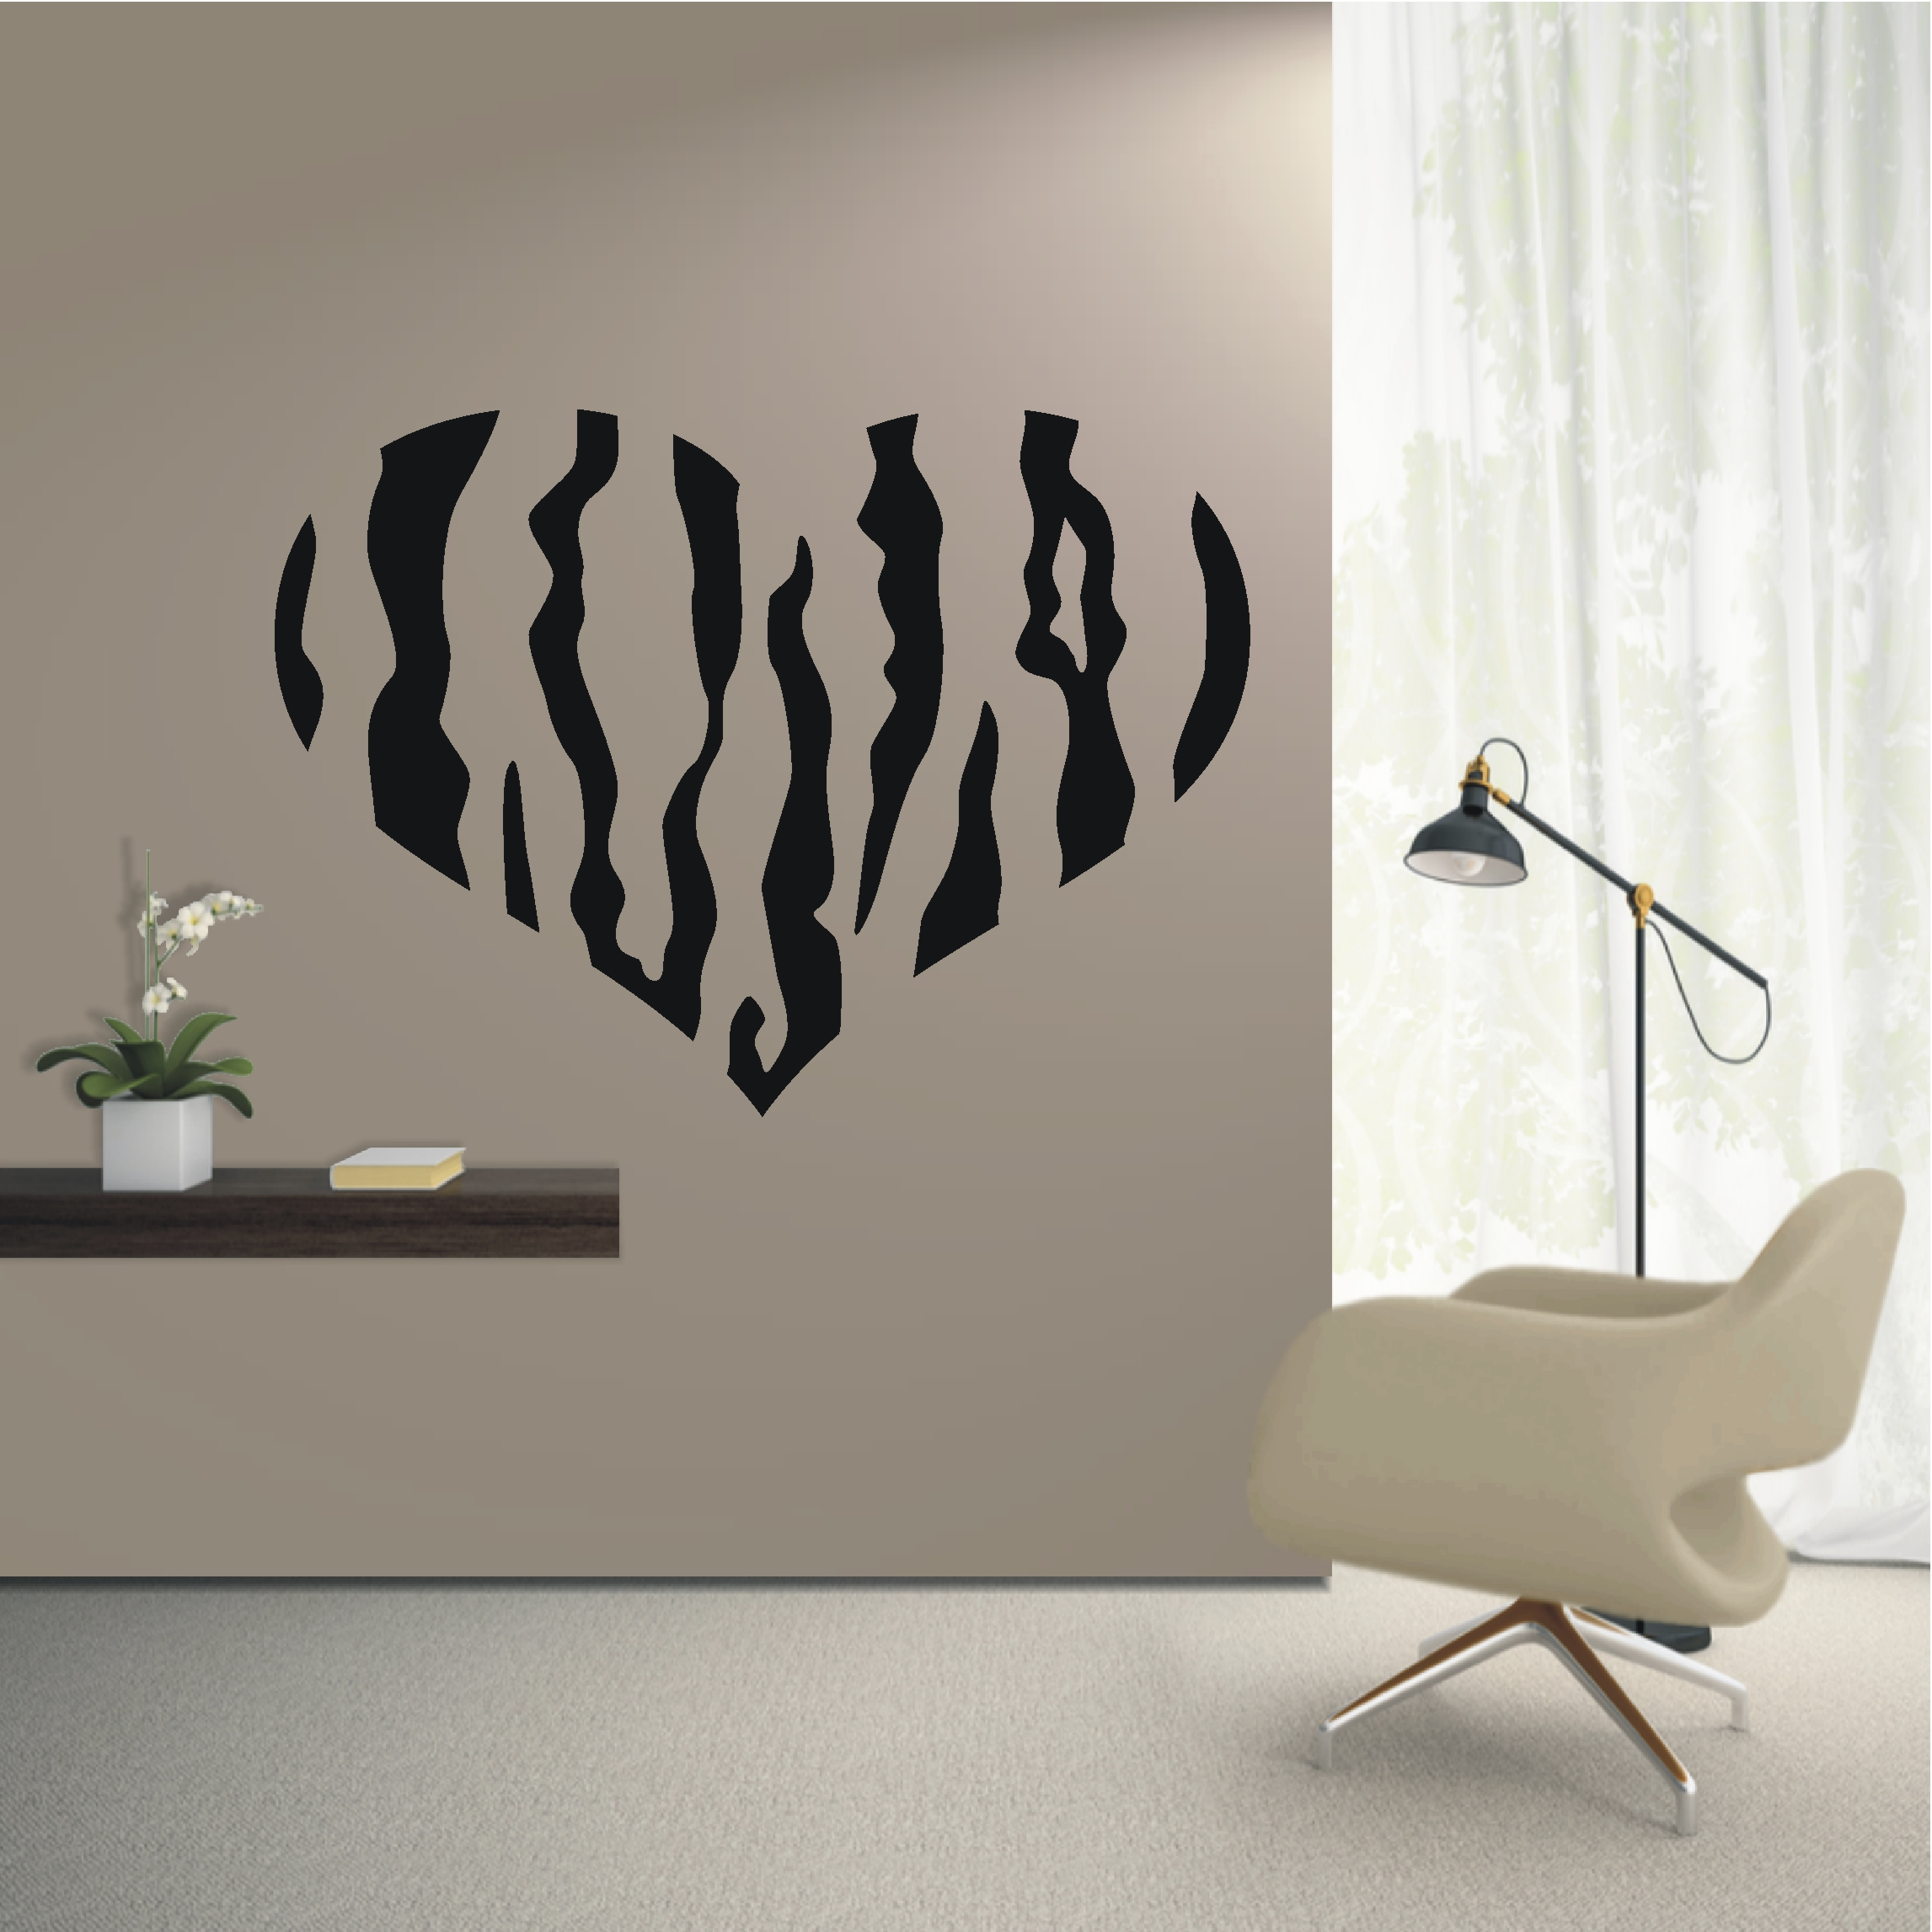 wandtattoo rauhfaser entfernen wandtattoo mit ihrem logo. Black Bedroom Furniture Sets. Home Design Ideas